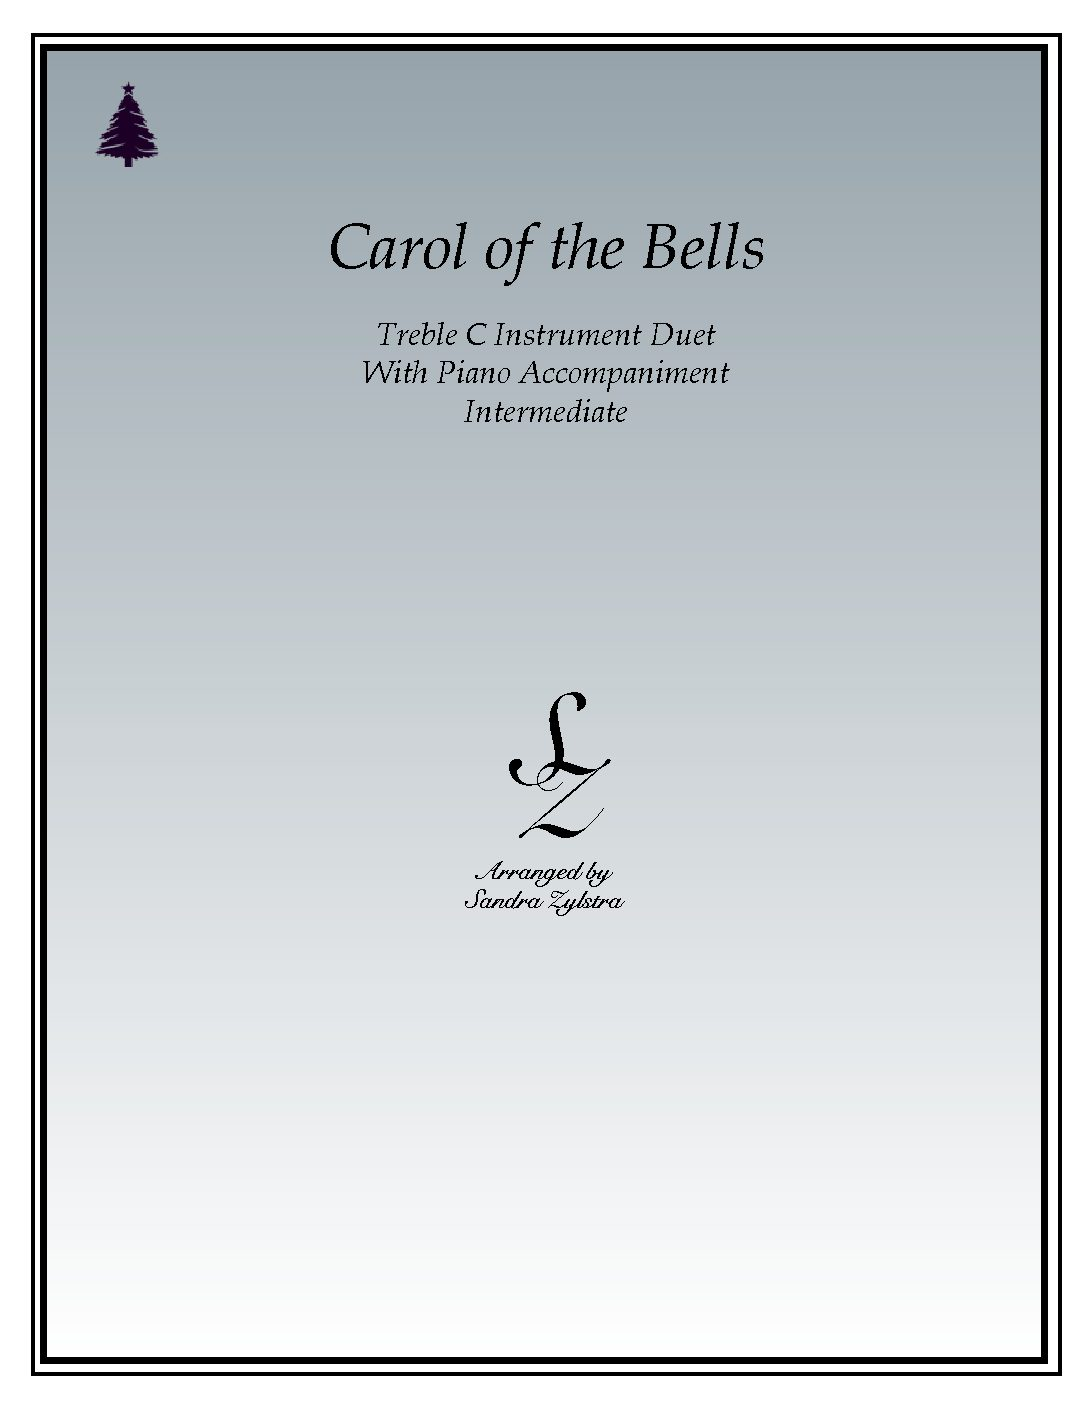 Carol Of The Bells – Instrument Duet & Piano Accompaniment